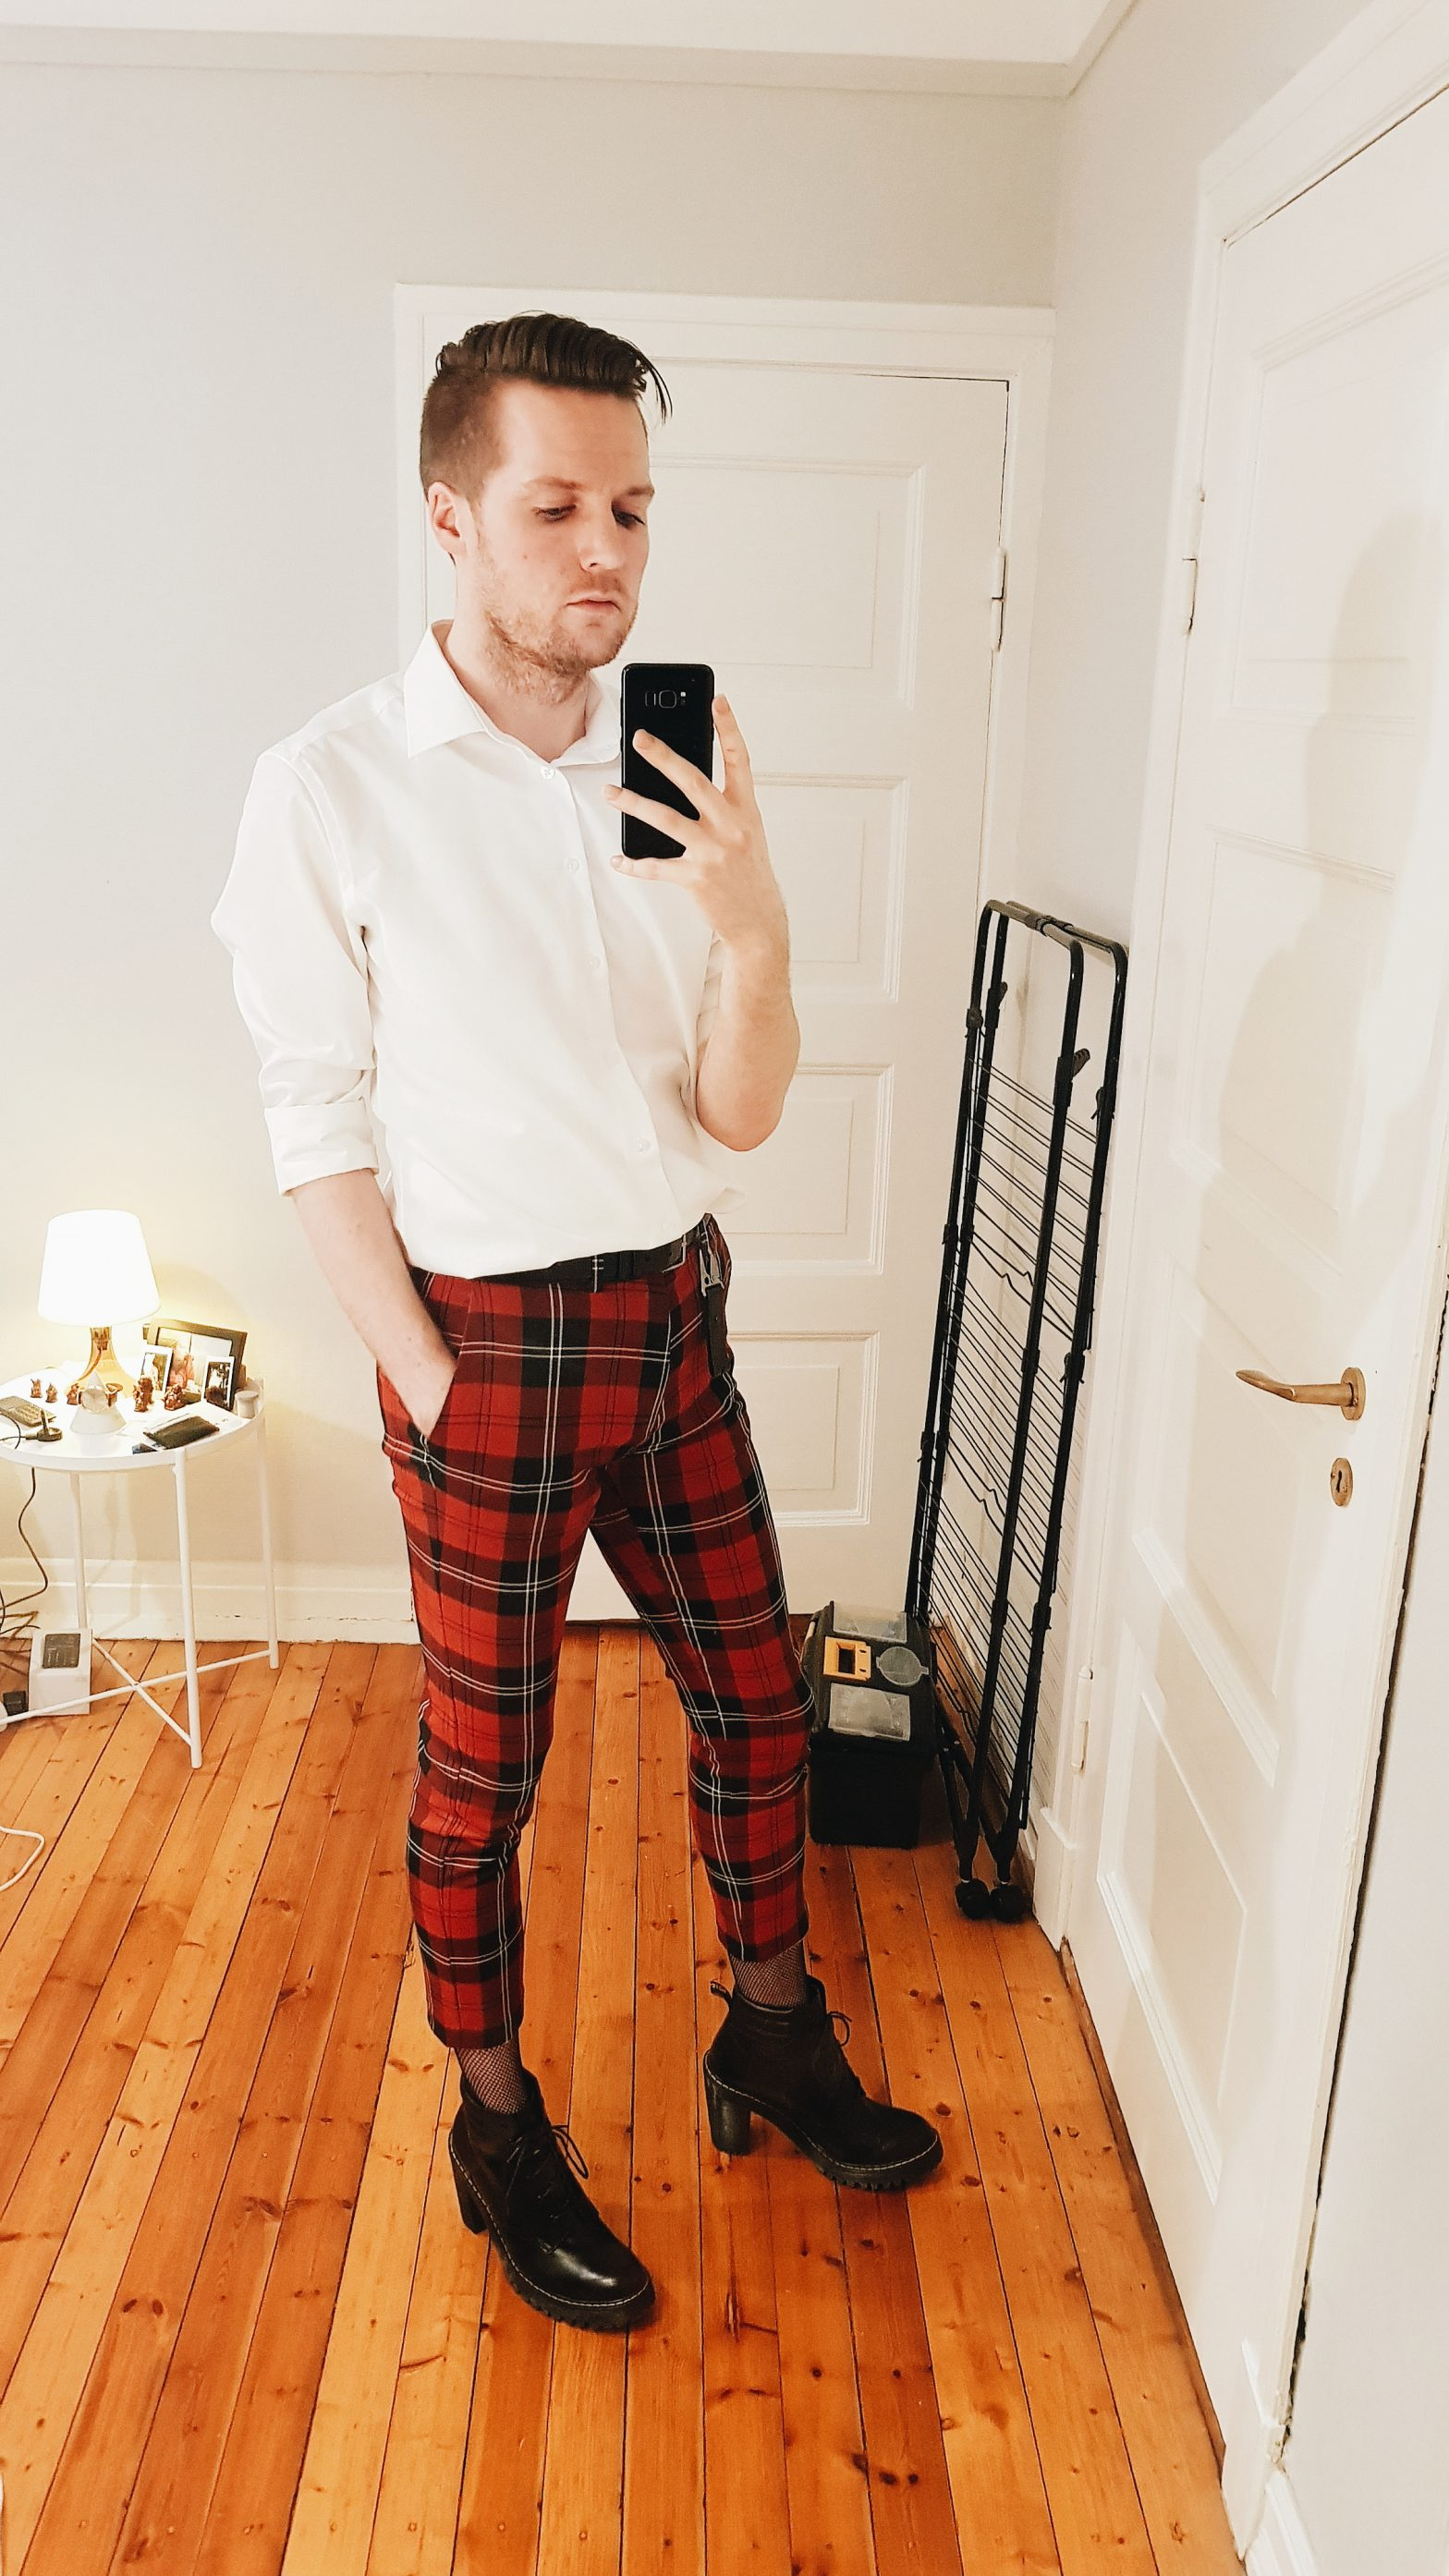 New trousers? Check.